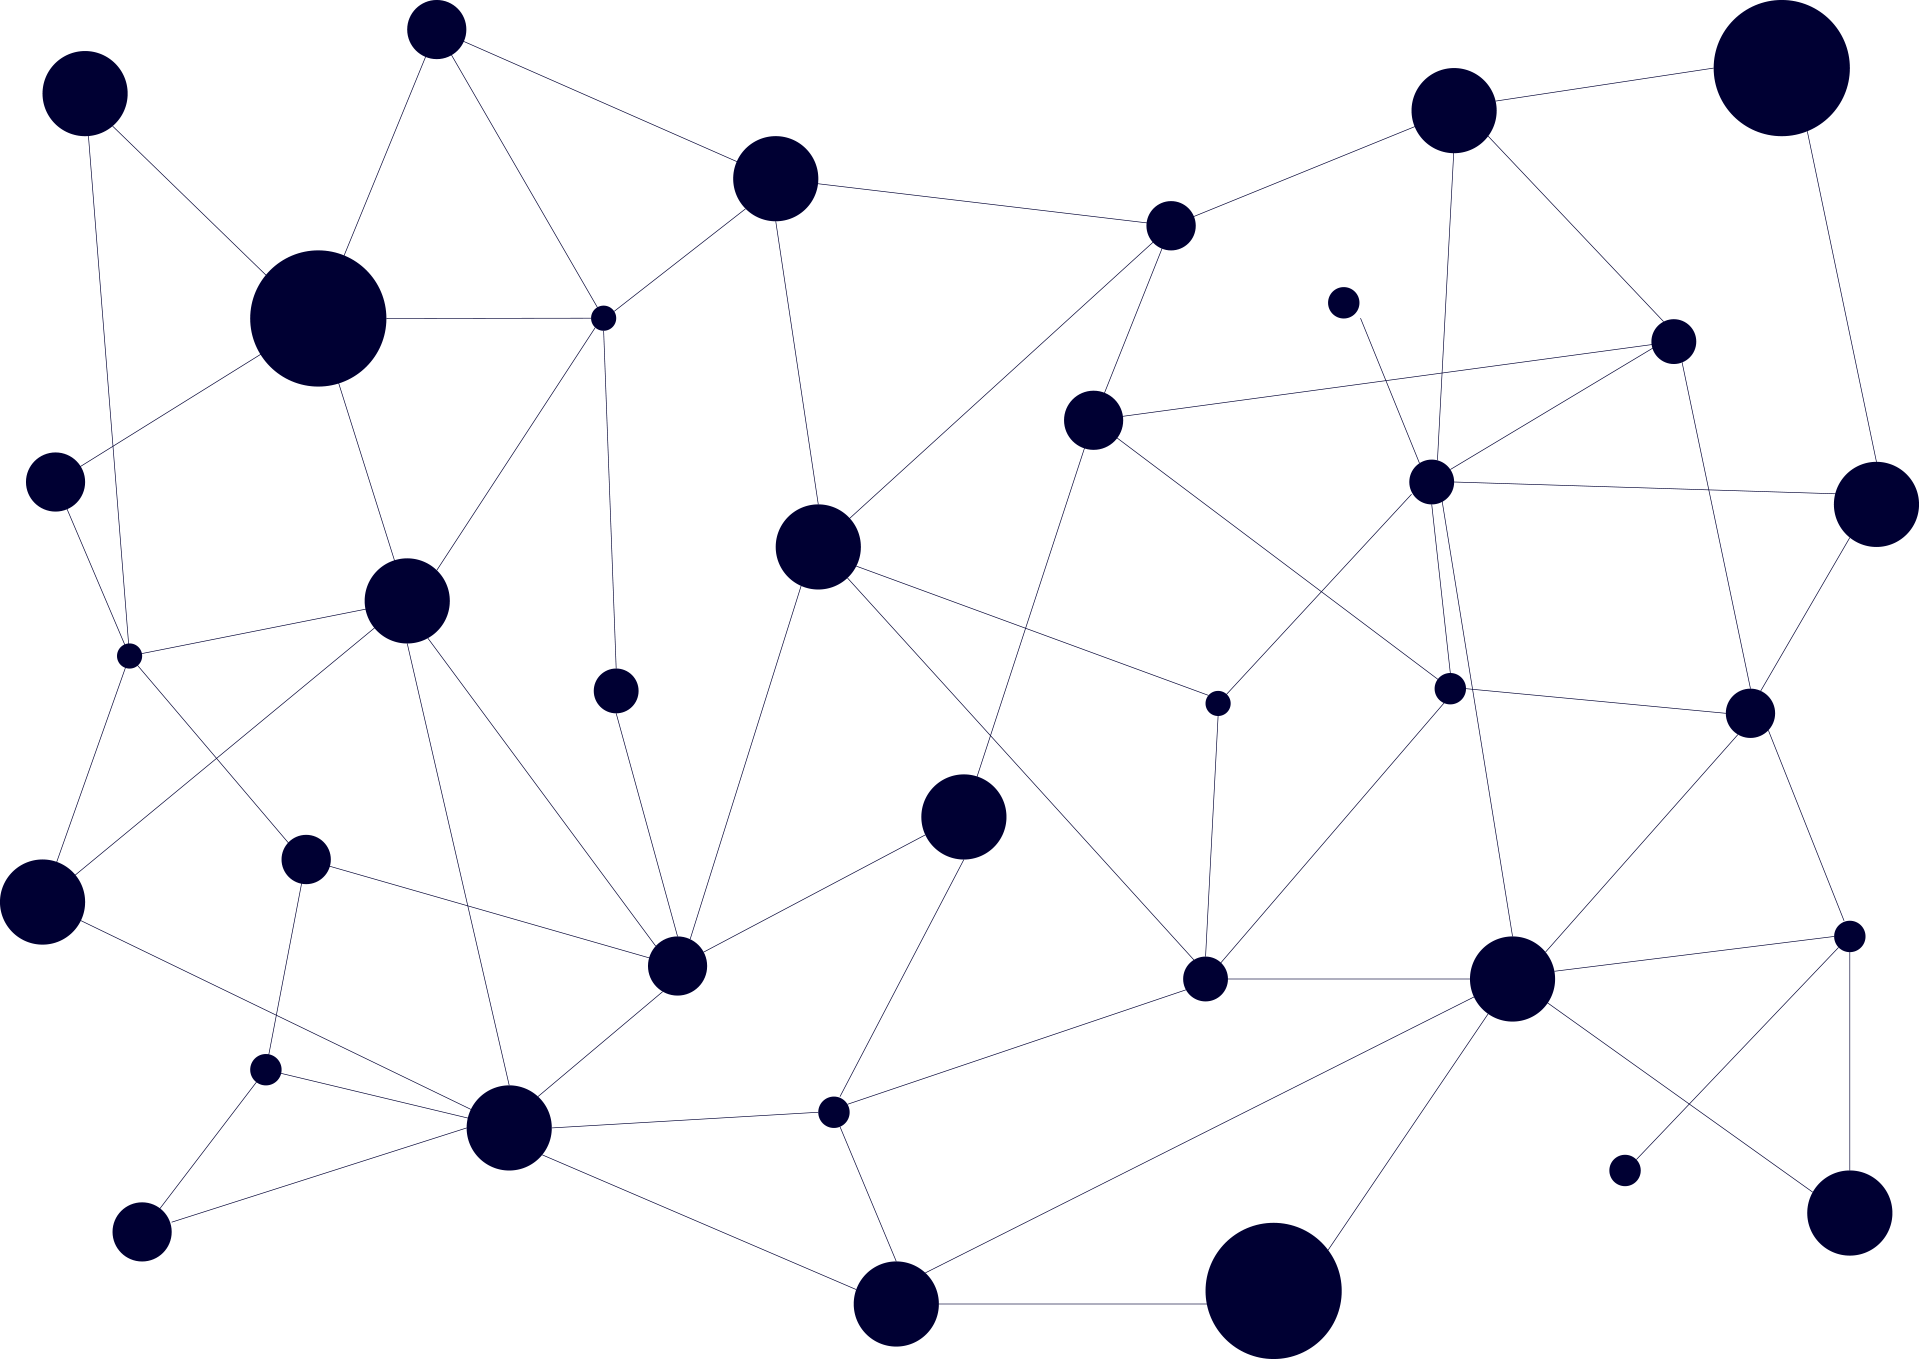 Node Profile Blockchain System Bitcoin User PNG Image